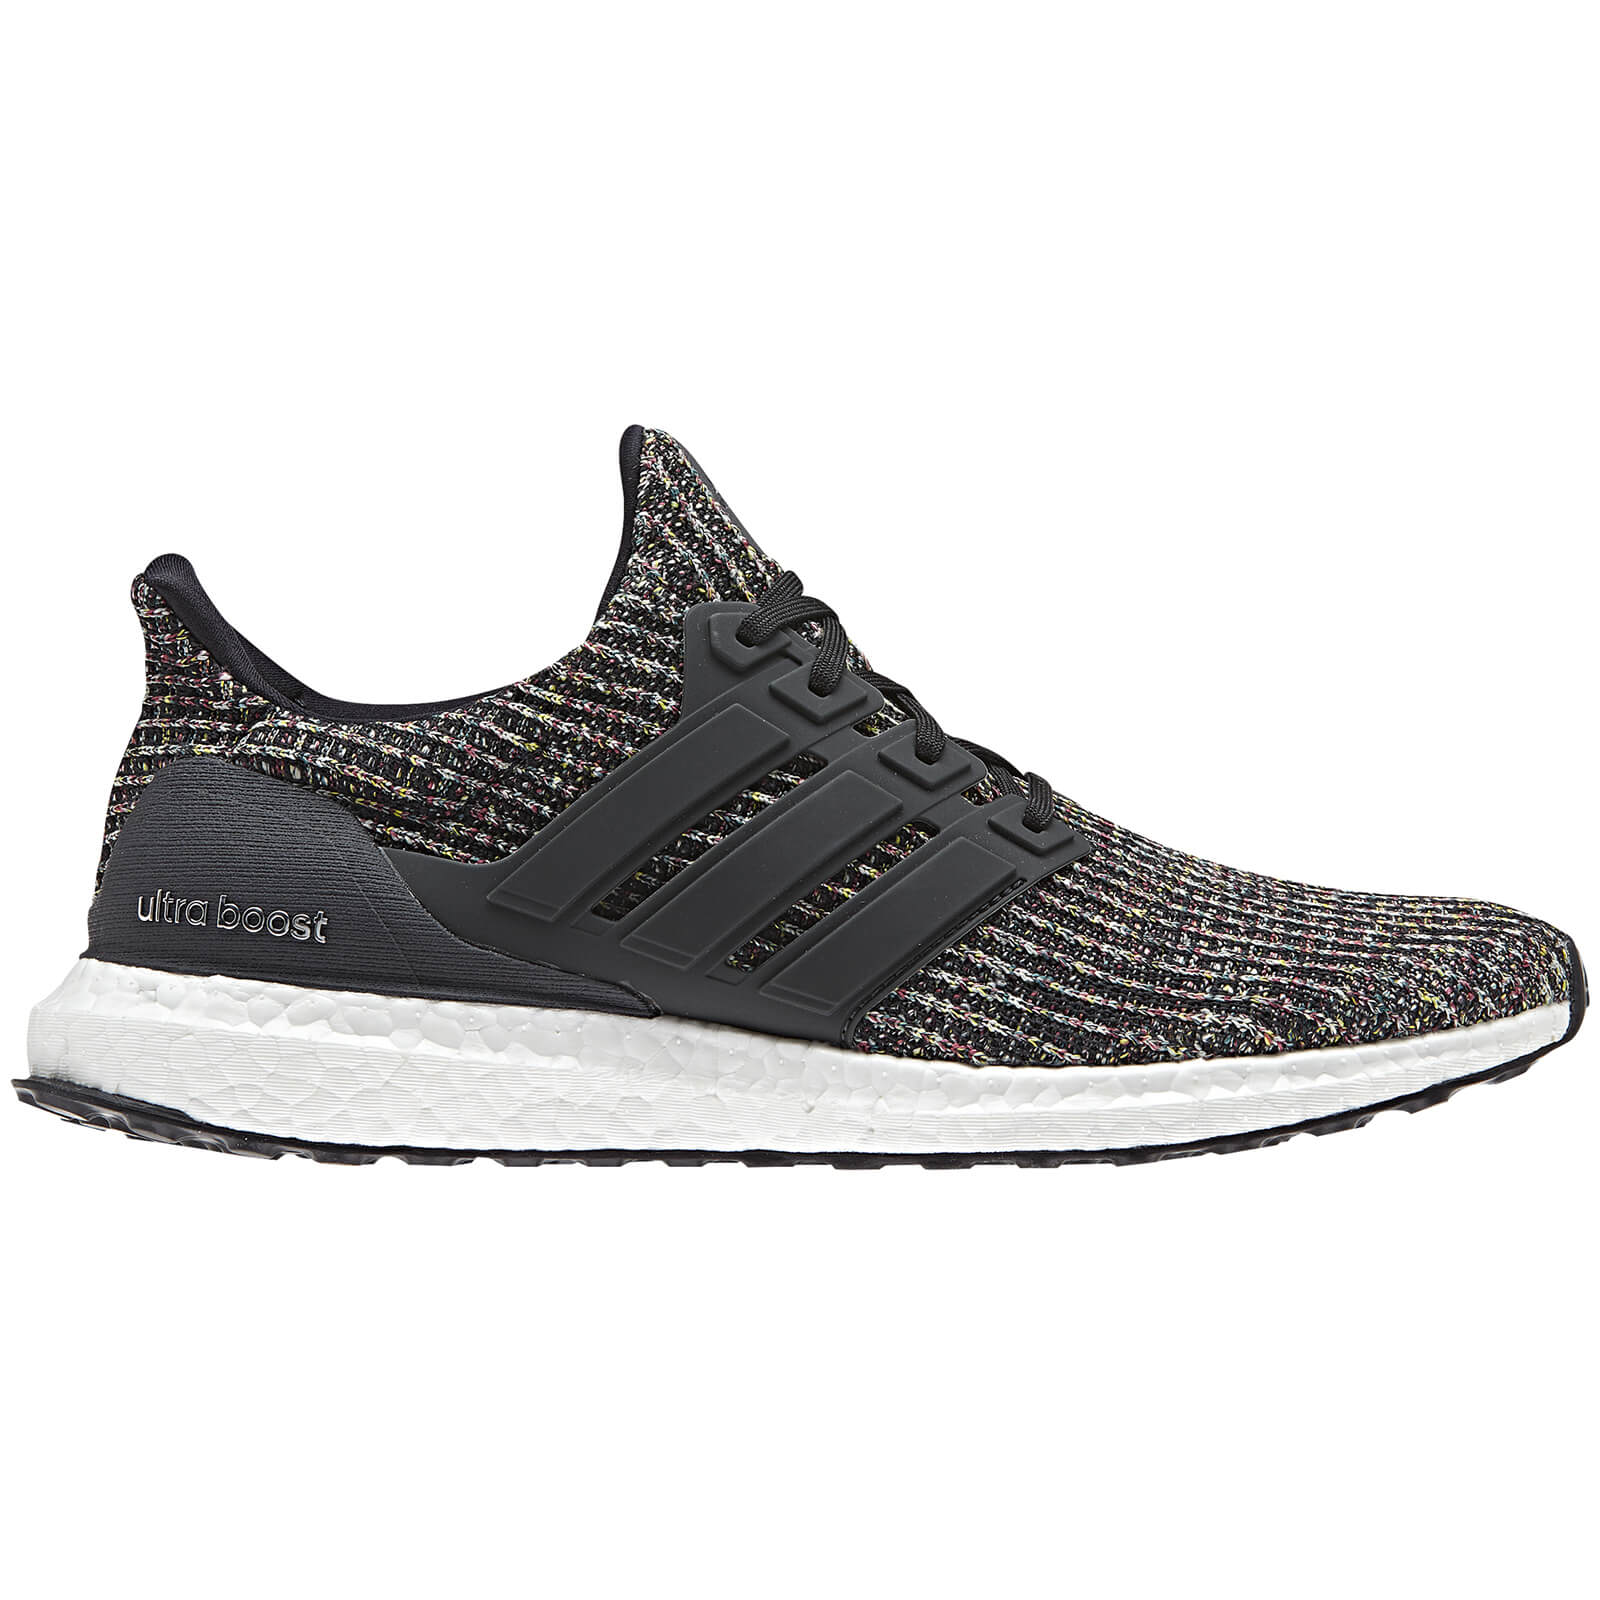 new style 0f536 3458c adidas Ultraboost Running Shoes - Carbon Black   ProBikeKit.com